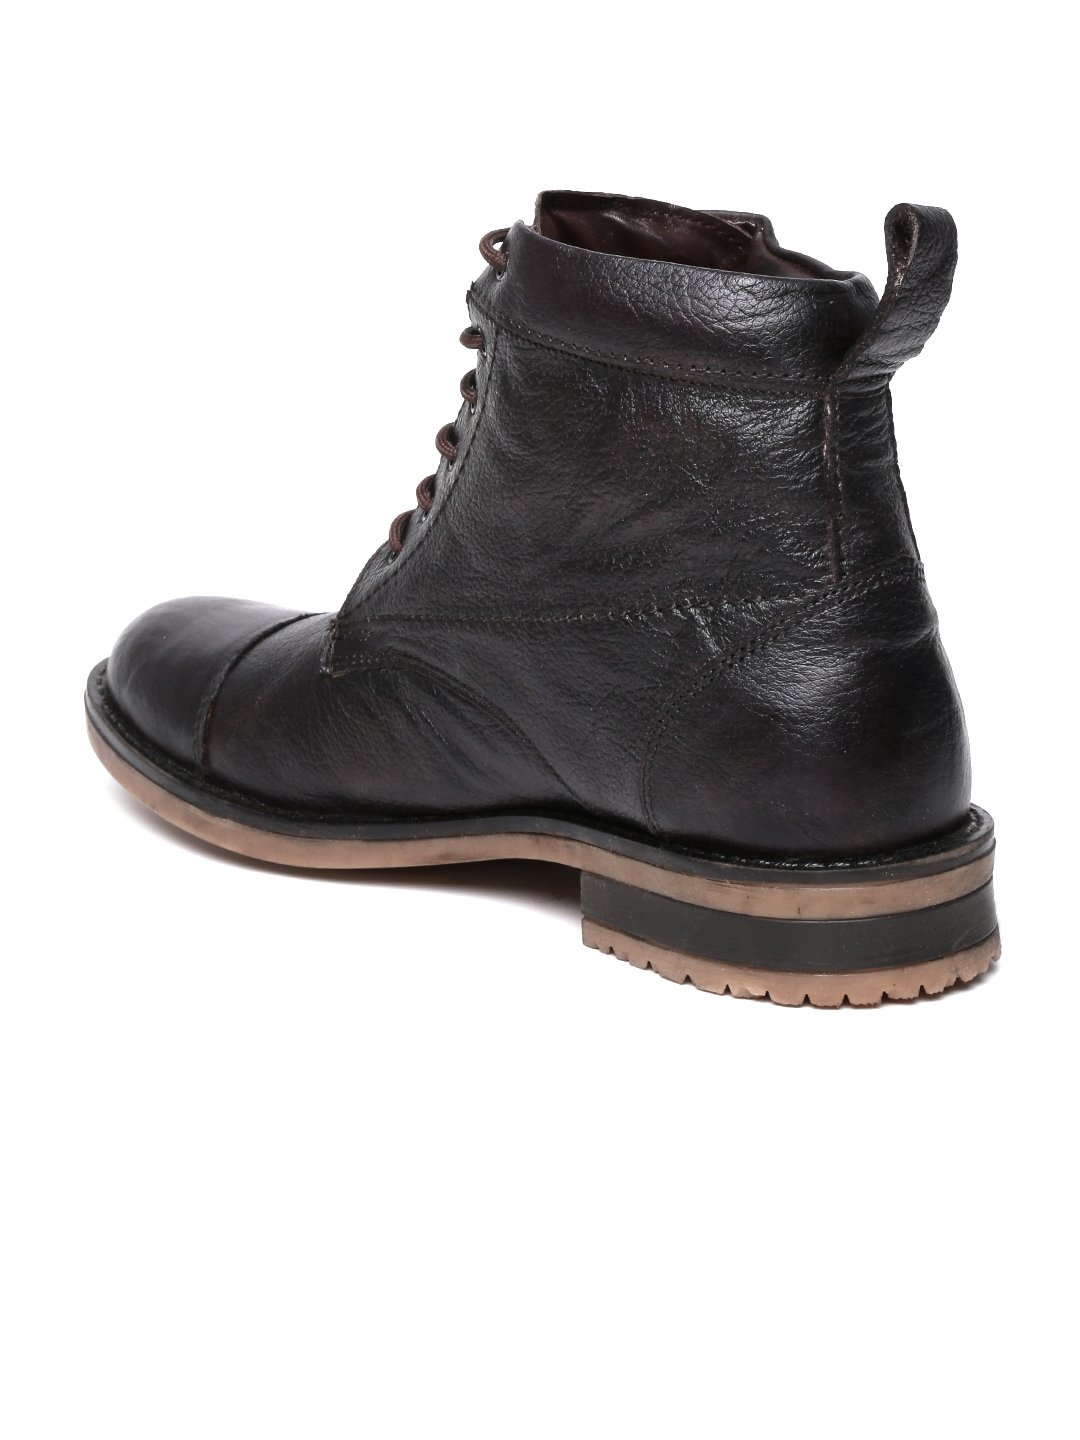 myntra roadster brown leather boots 580575 buy